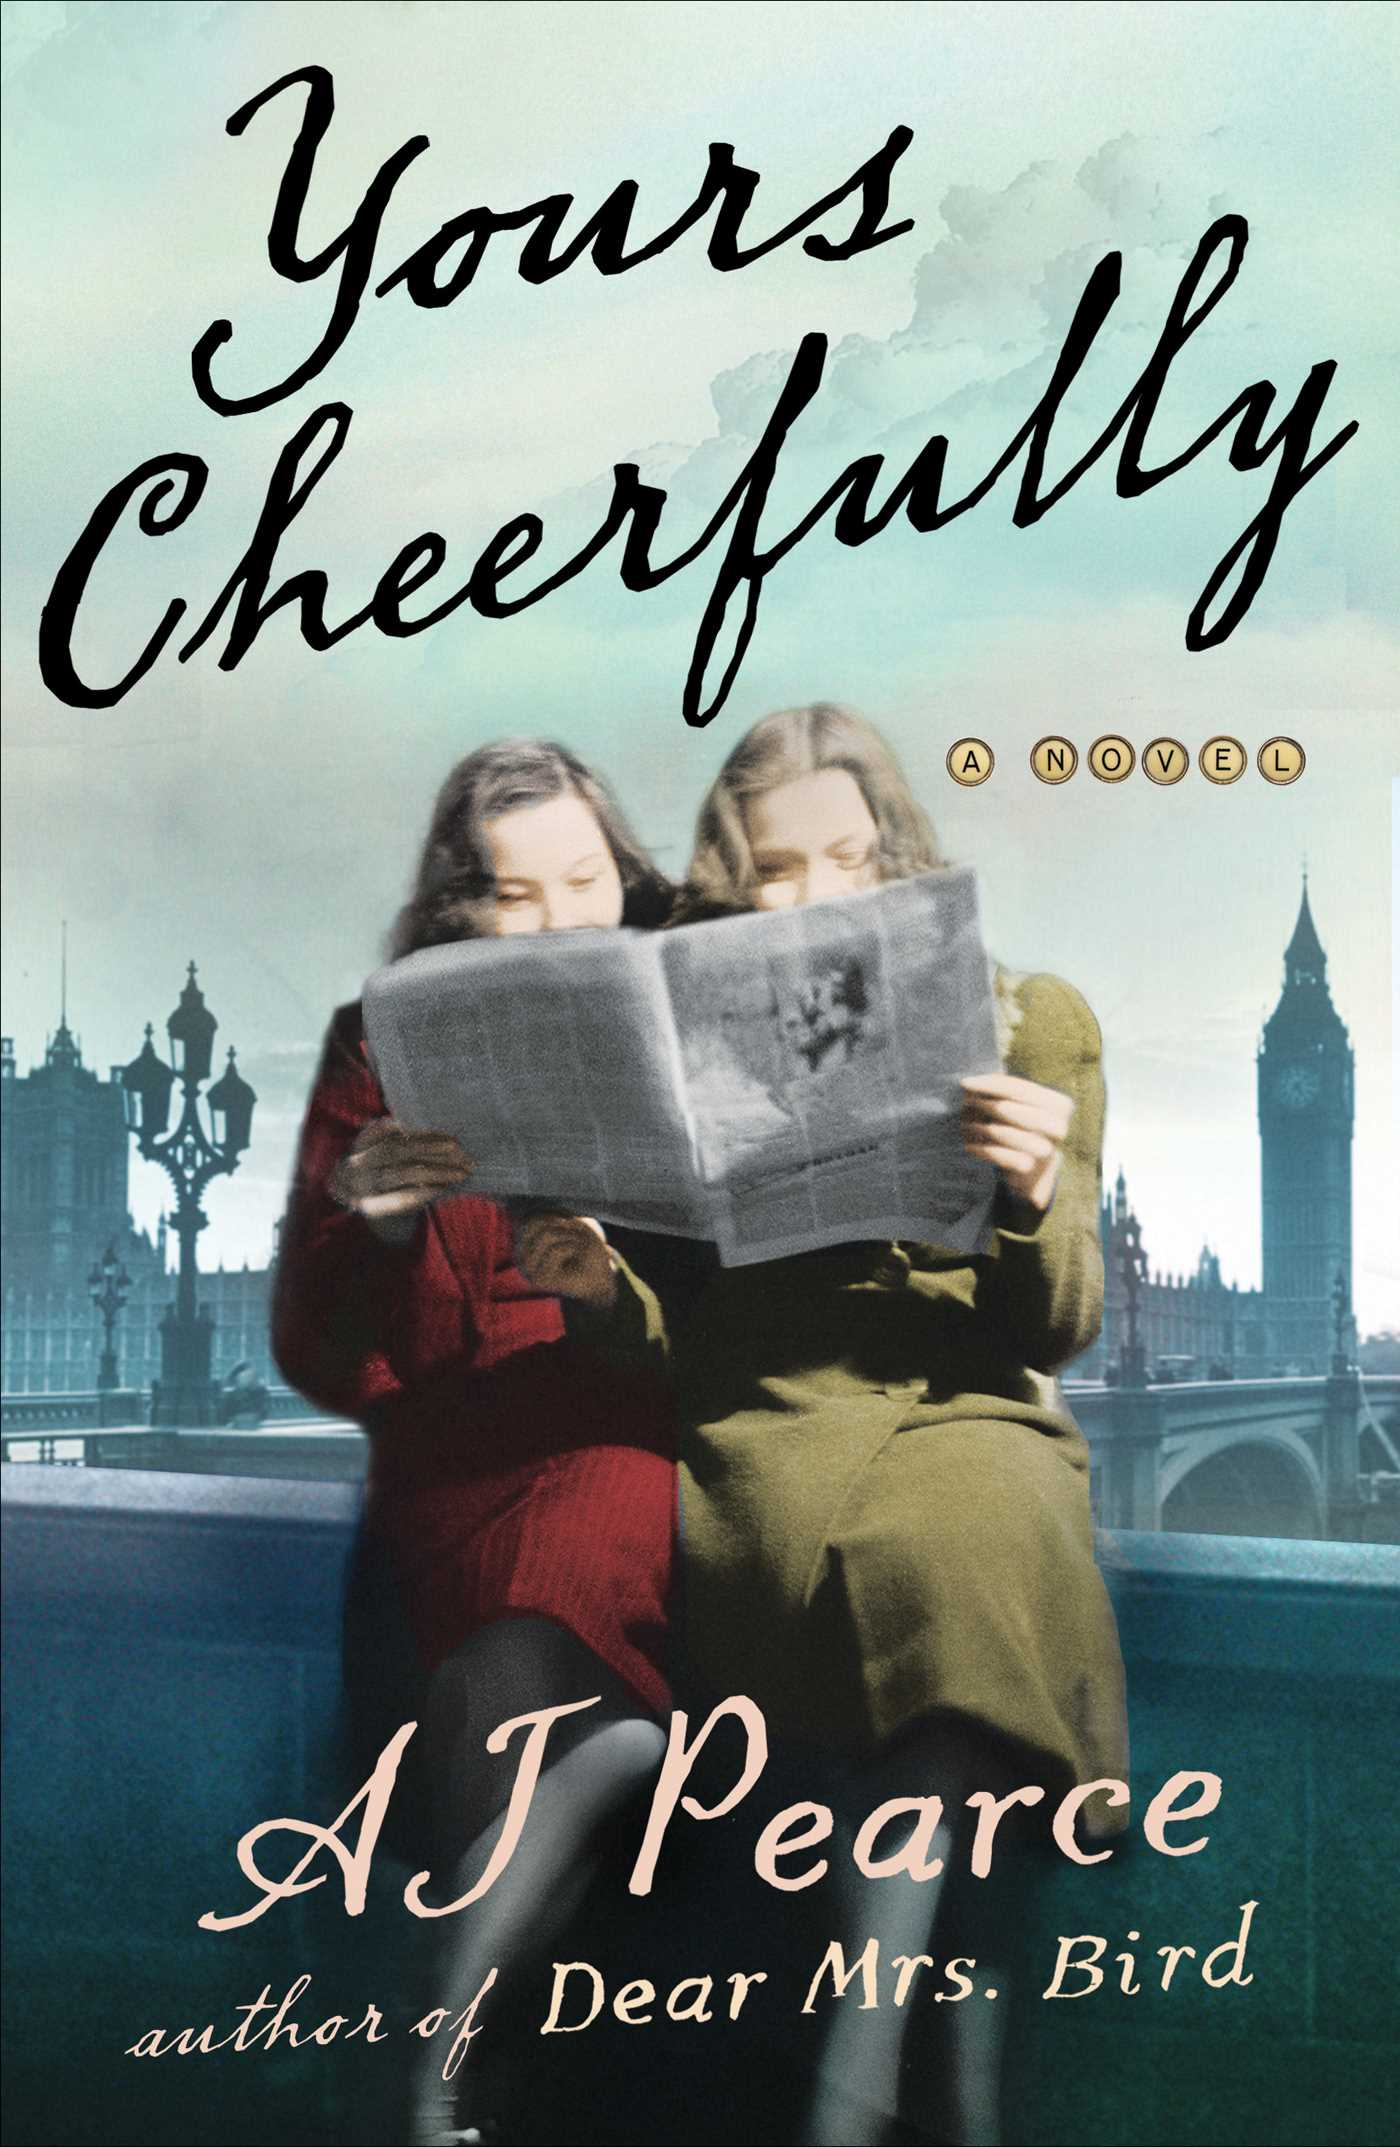 Yours Cheerfully (Dear Mrs. Bird 2) Release Date? A.J. Pearce 2021 New Releases